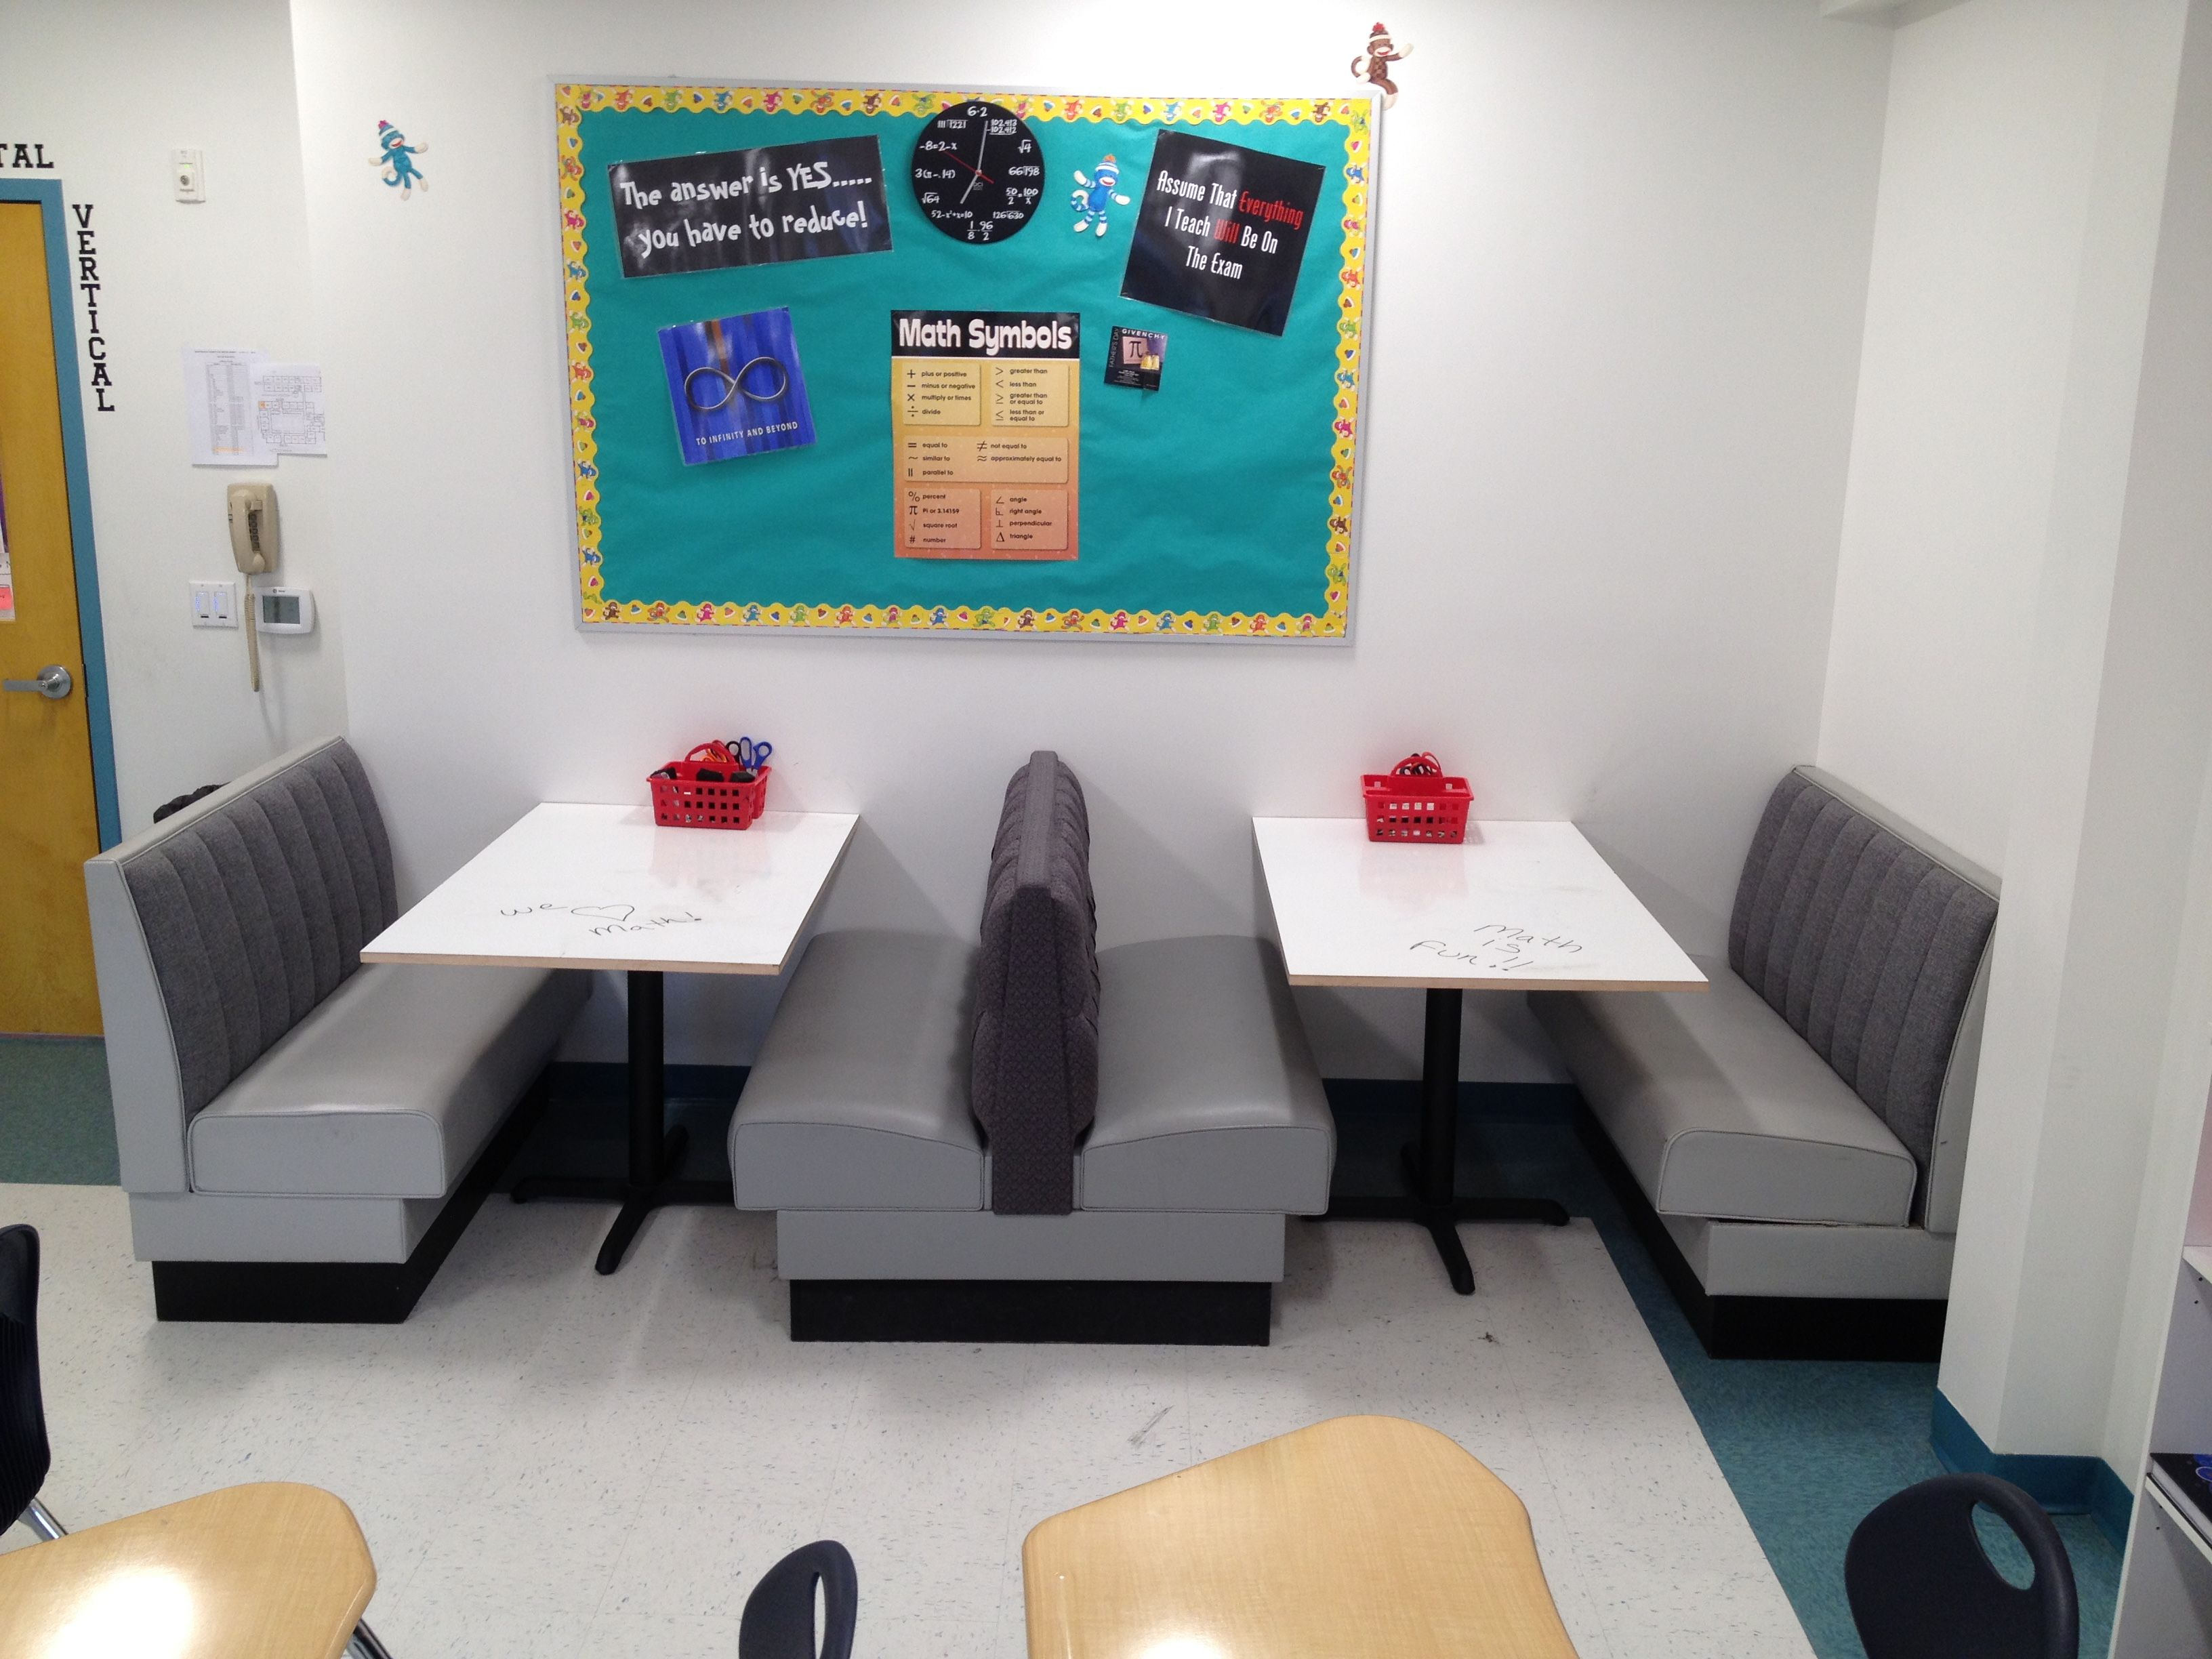 Classroom Seating Ideas : Classroom seating diner booths use for computer during